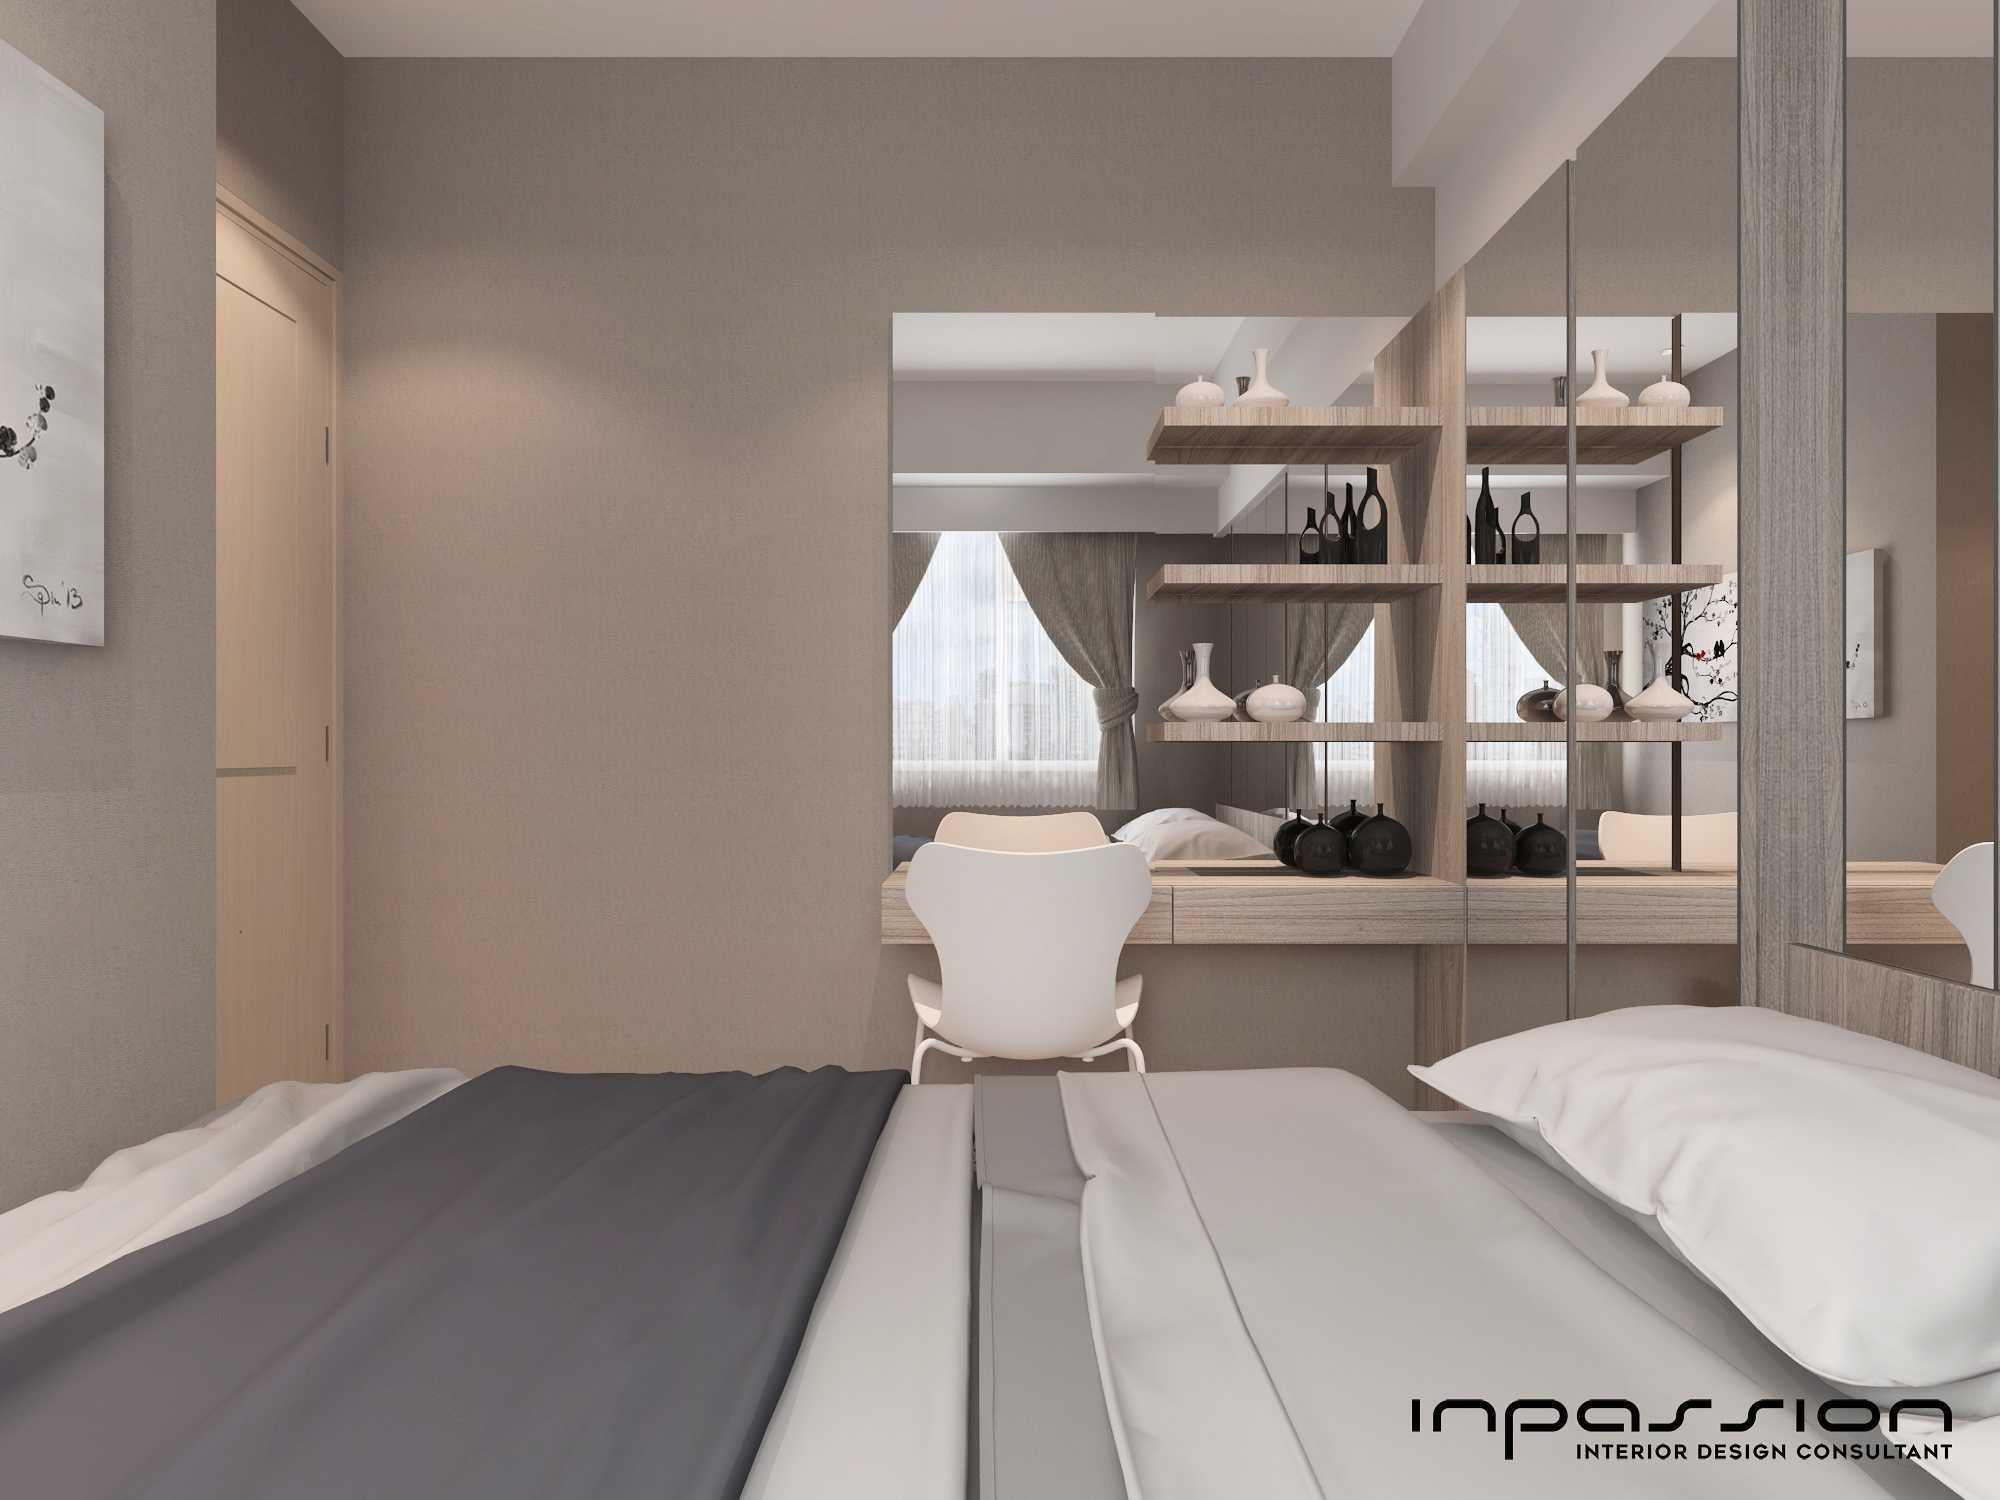 Inpassion Interior Design Educity Apartemen 3 Bedroom Surabaya City, East Java, Indonesia Surabaya City, East Java, Indonesia Img20170506104144148 Kontemporer  31587